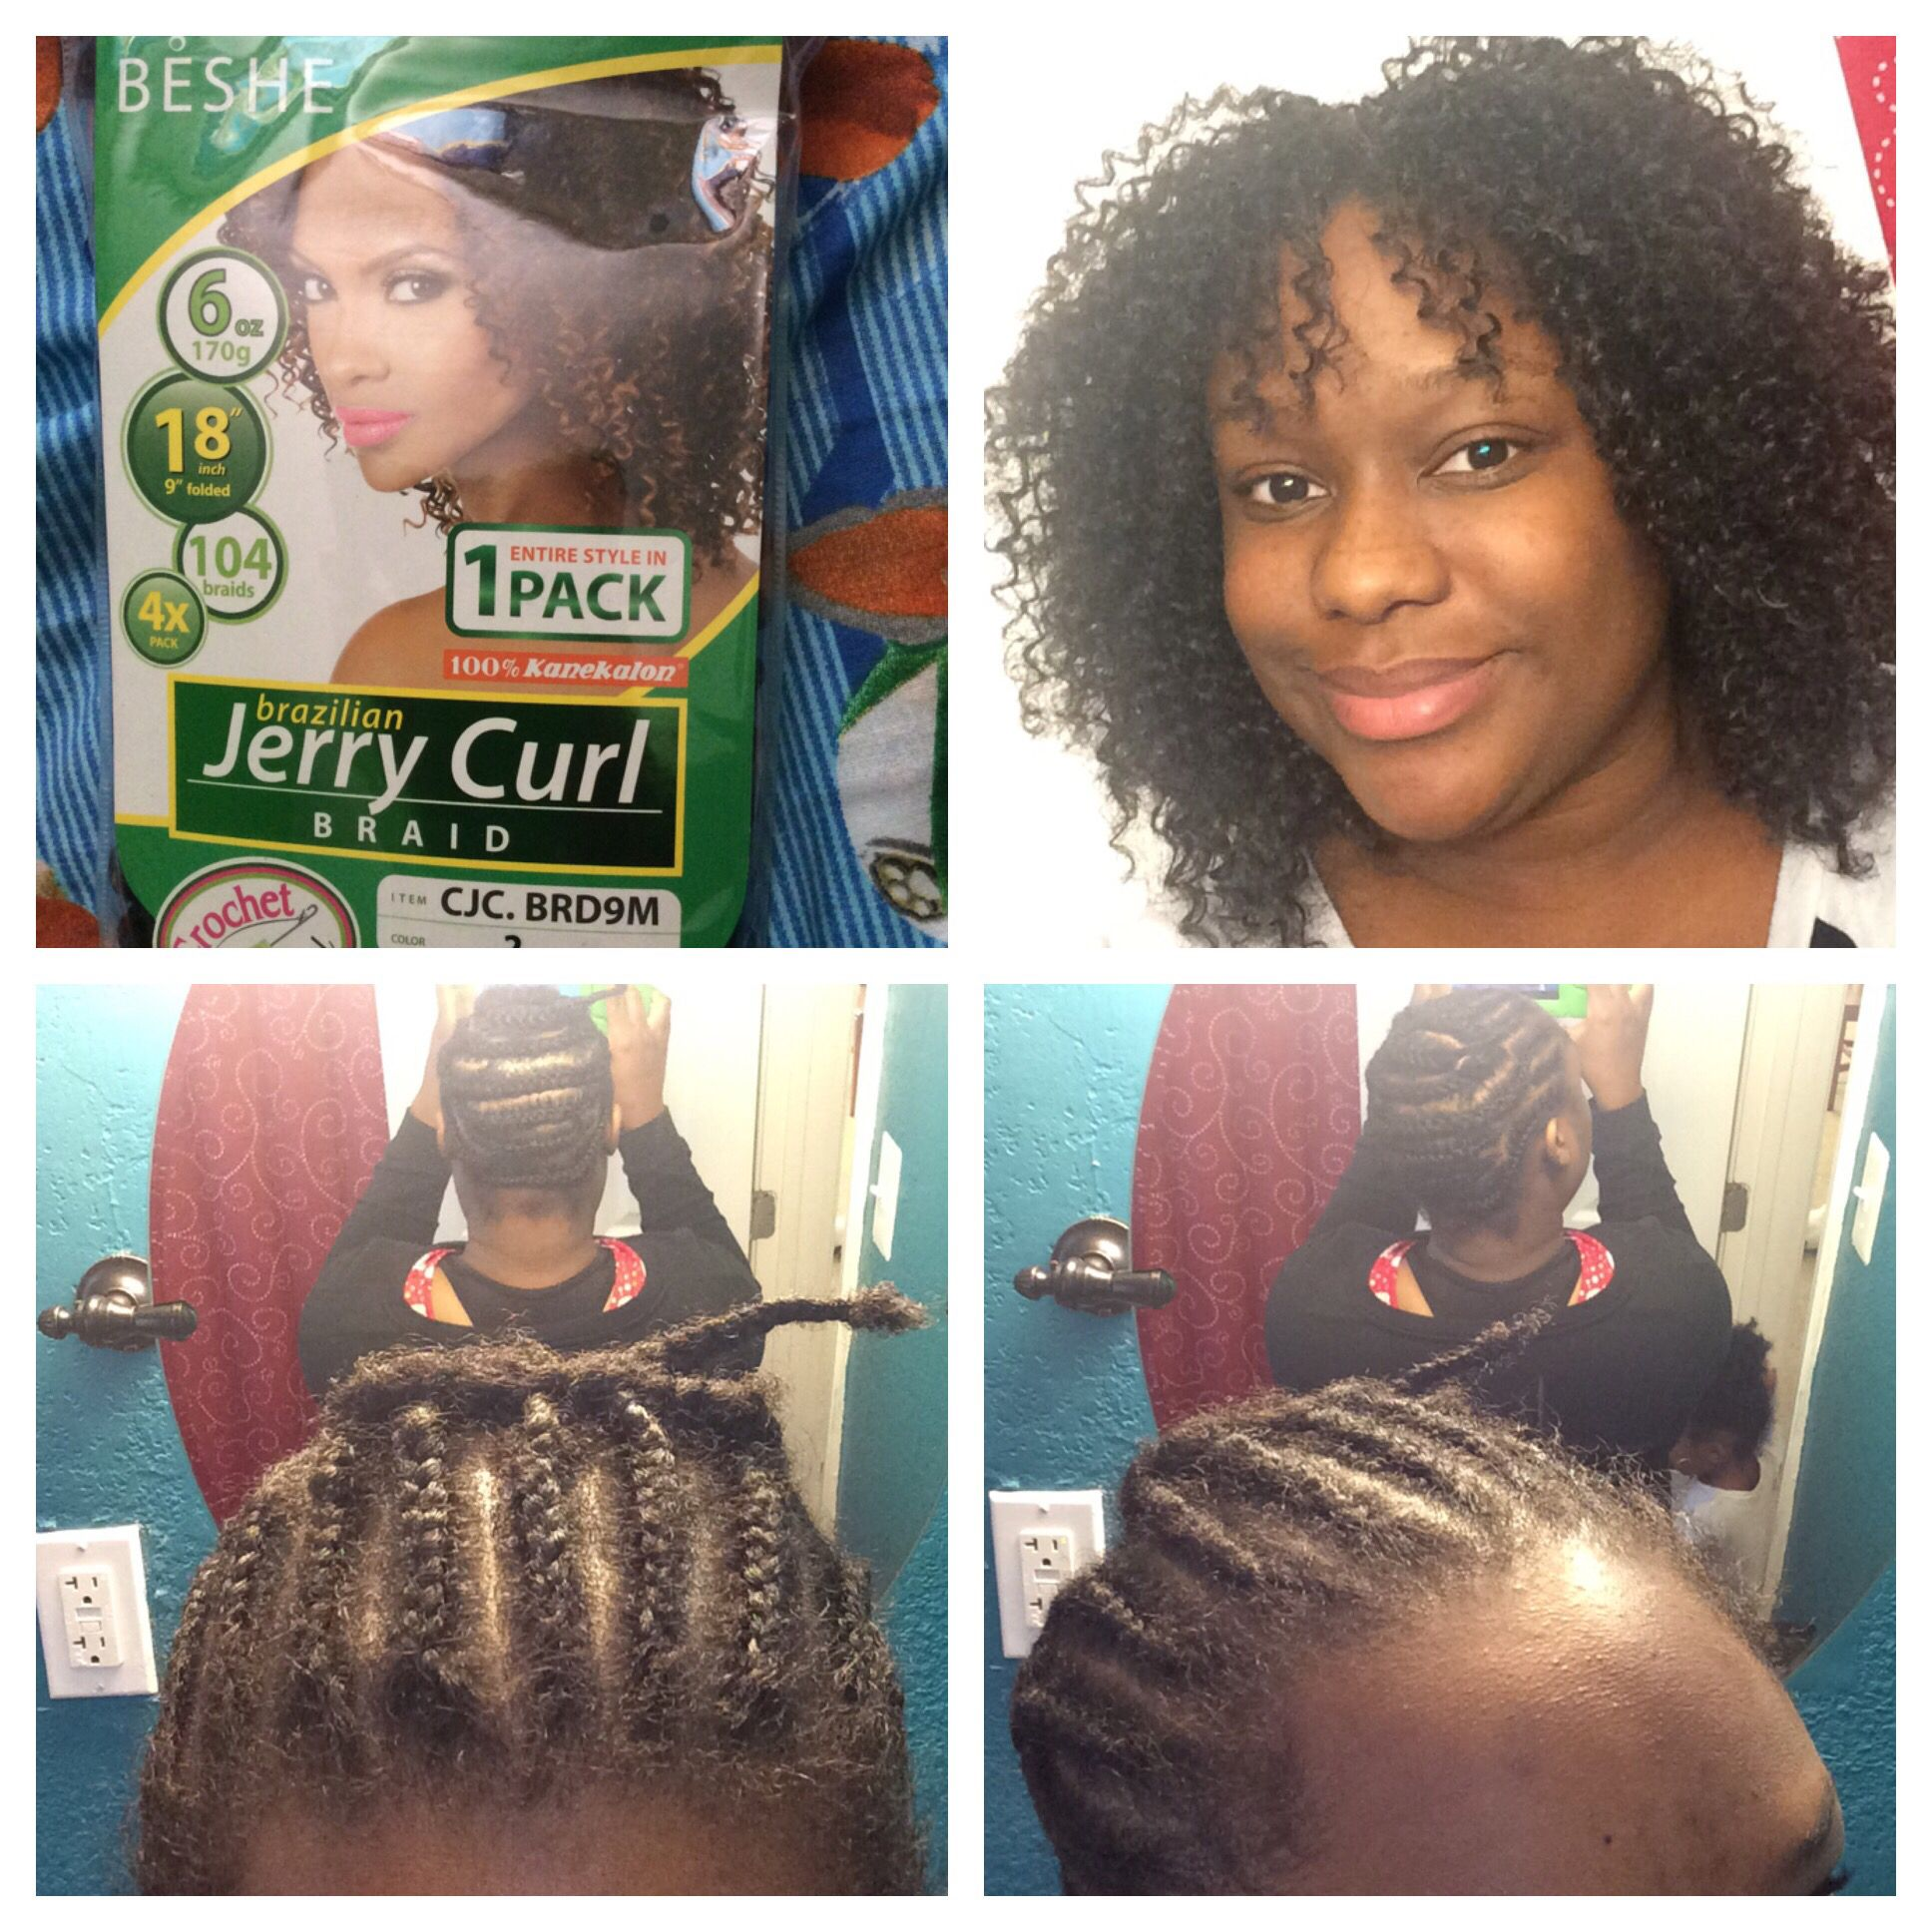 Beshe Brazilian Jerry Curl Braid One Pack Is All You Need Cost 10